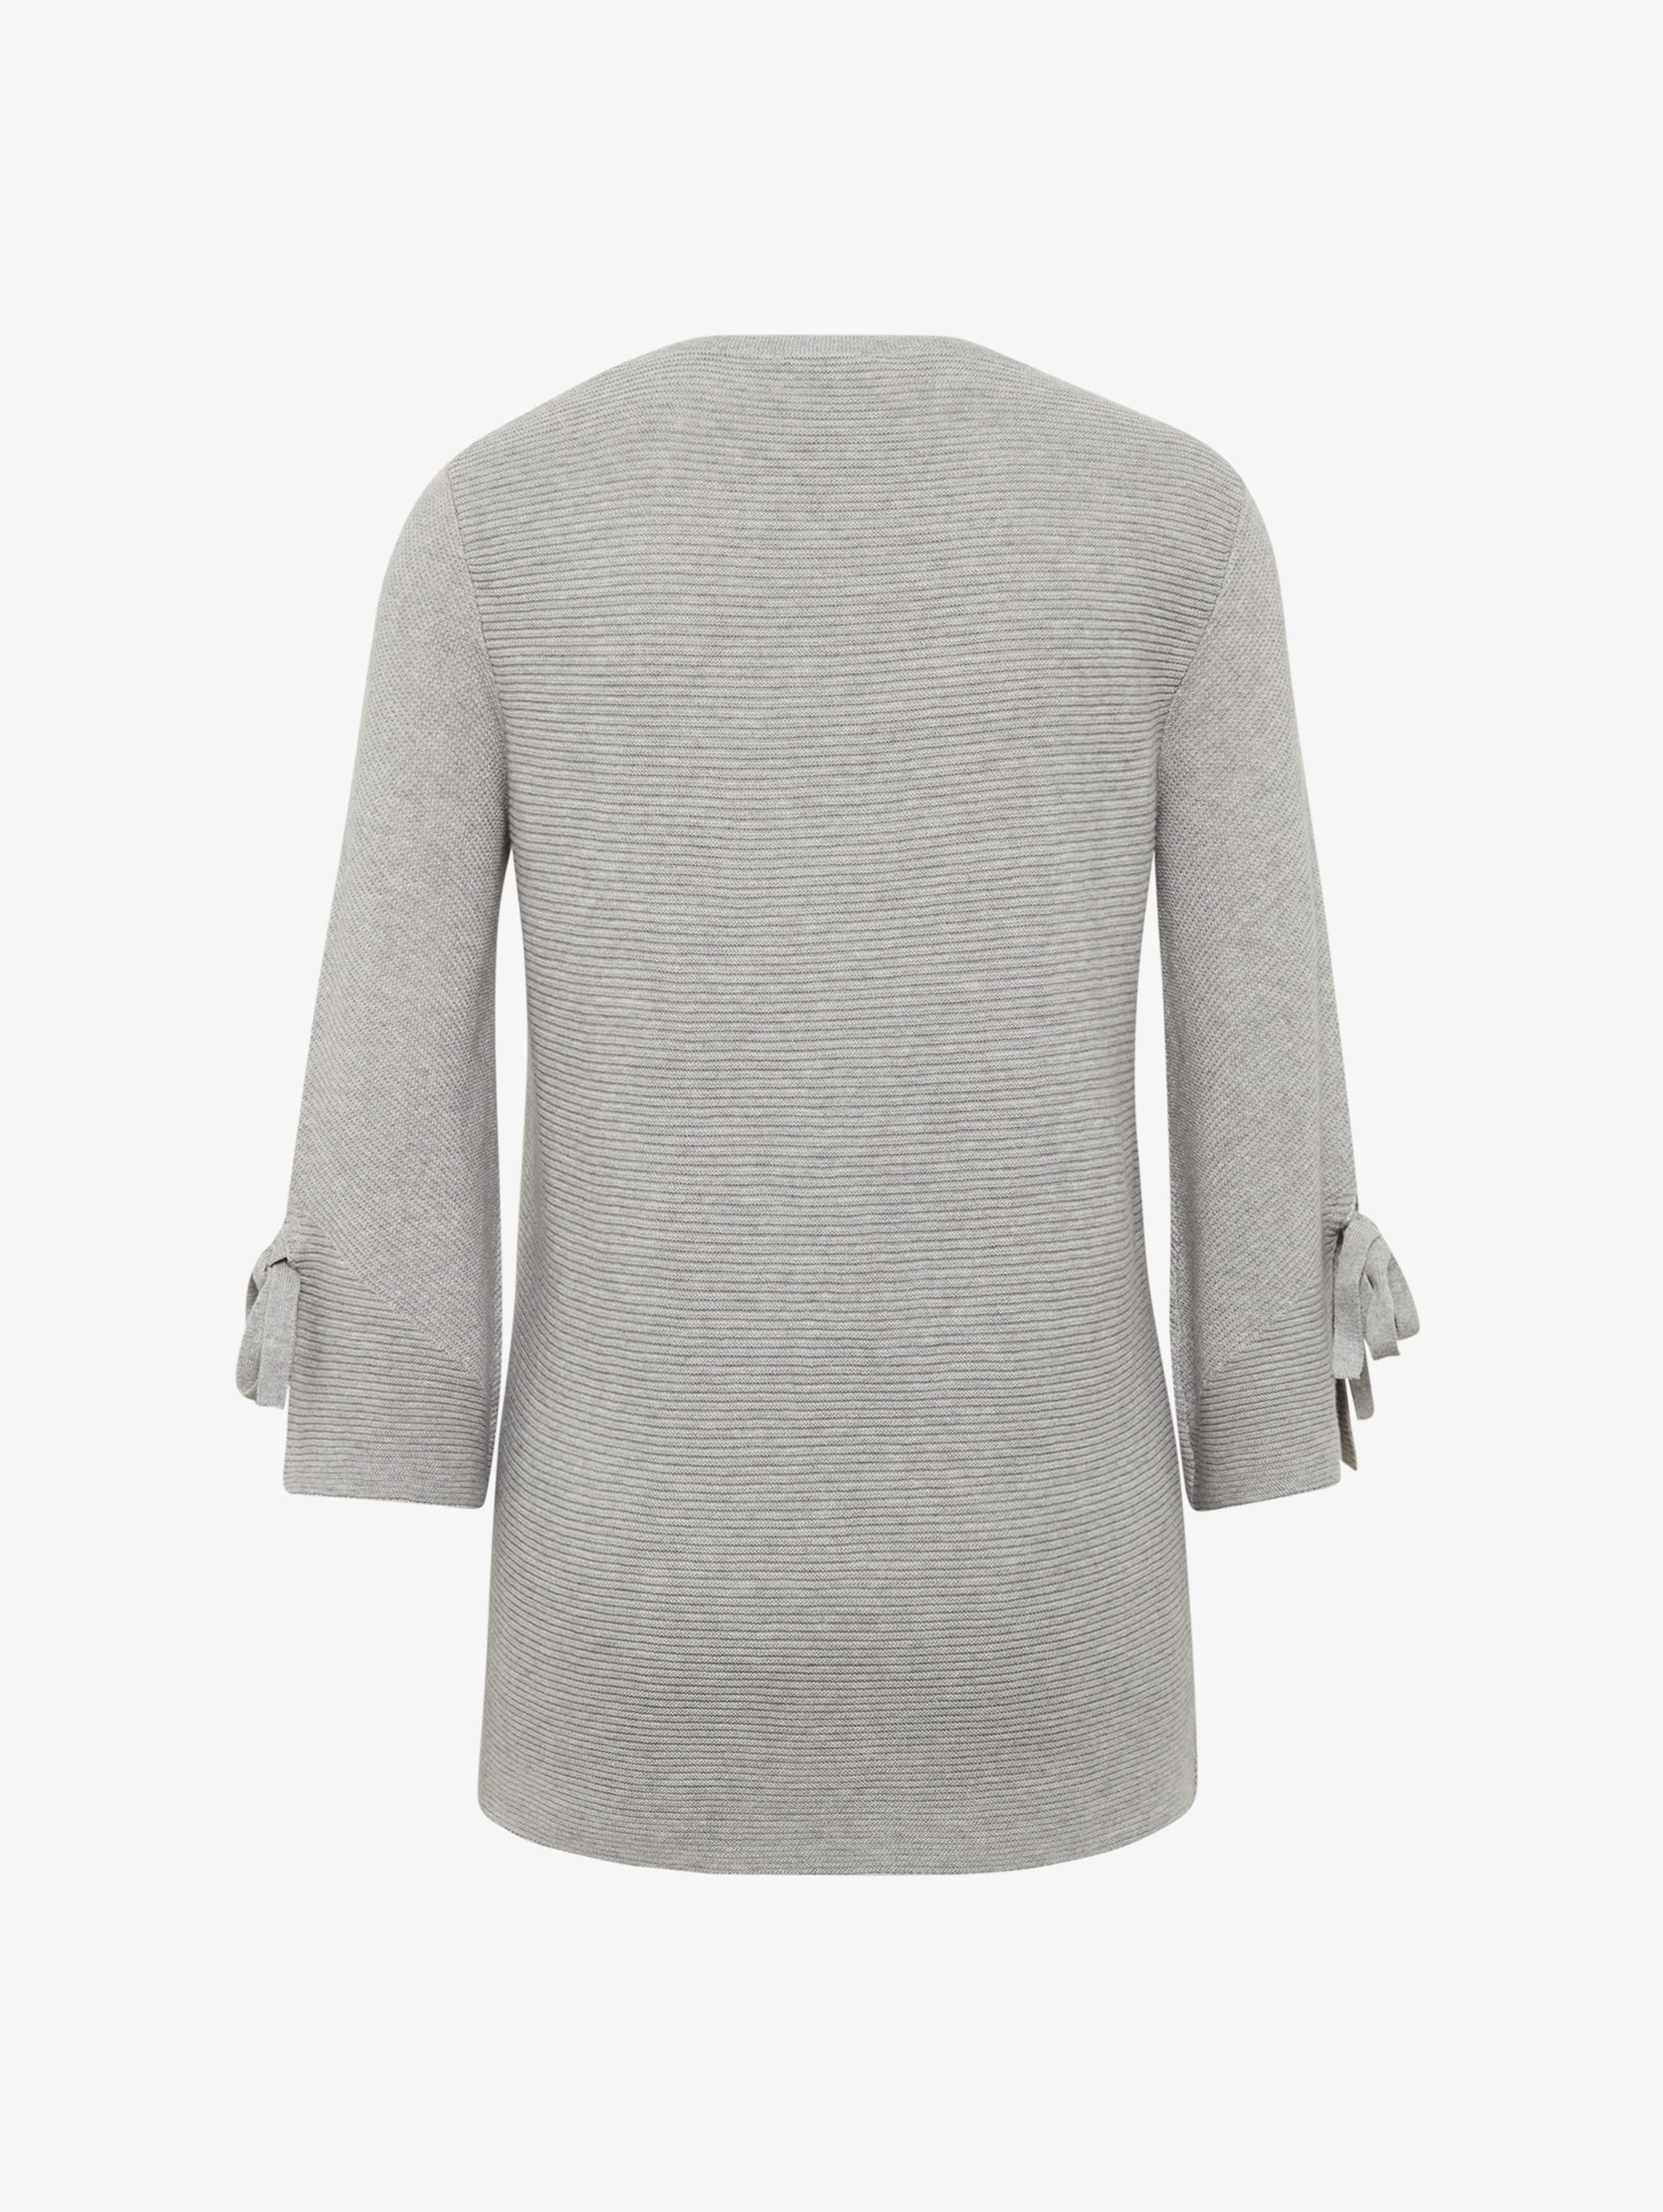 Tom Pullover In Graumeliert Pullover Pullover Tailor Tom Graumeliert In Tailor Tom Tailor rxQshtdC